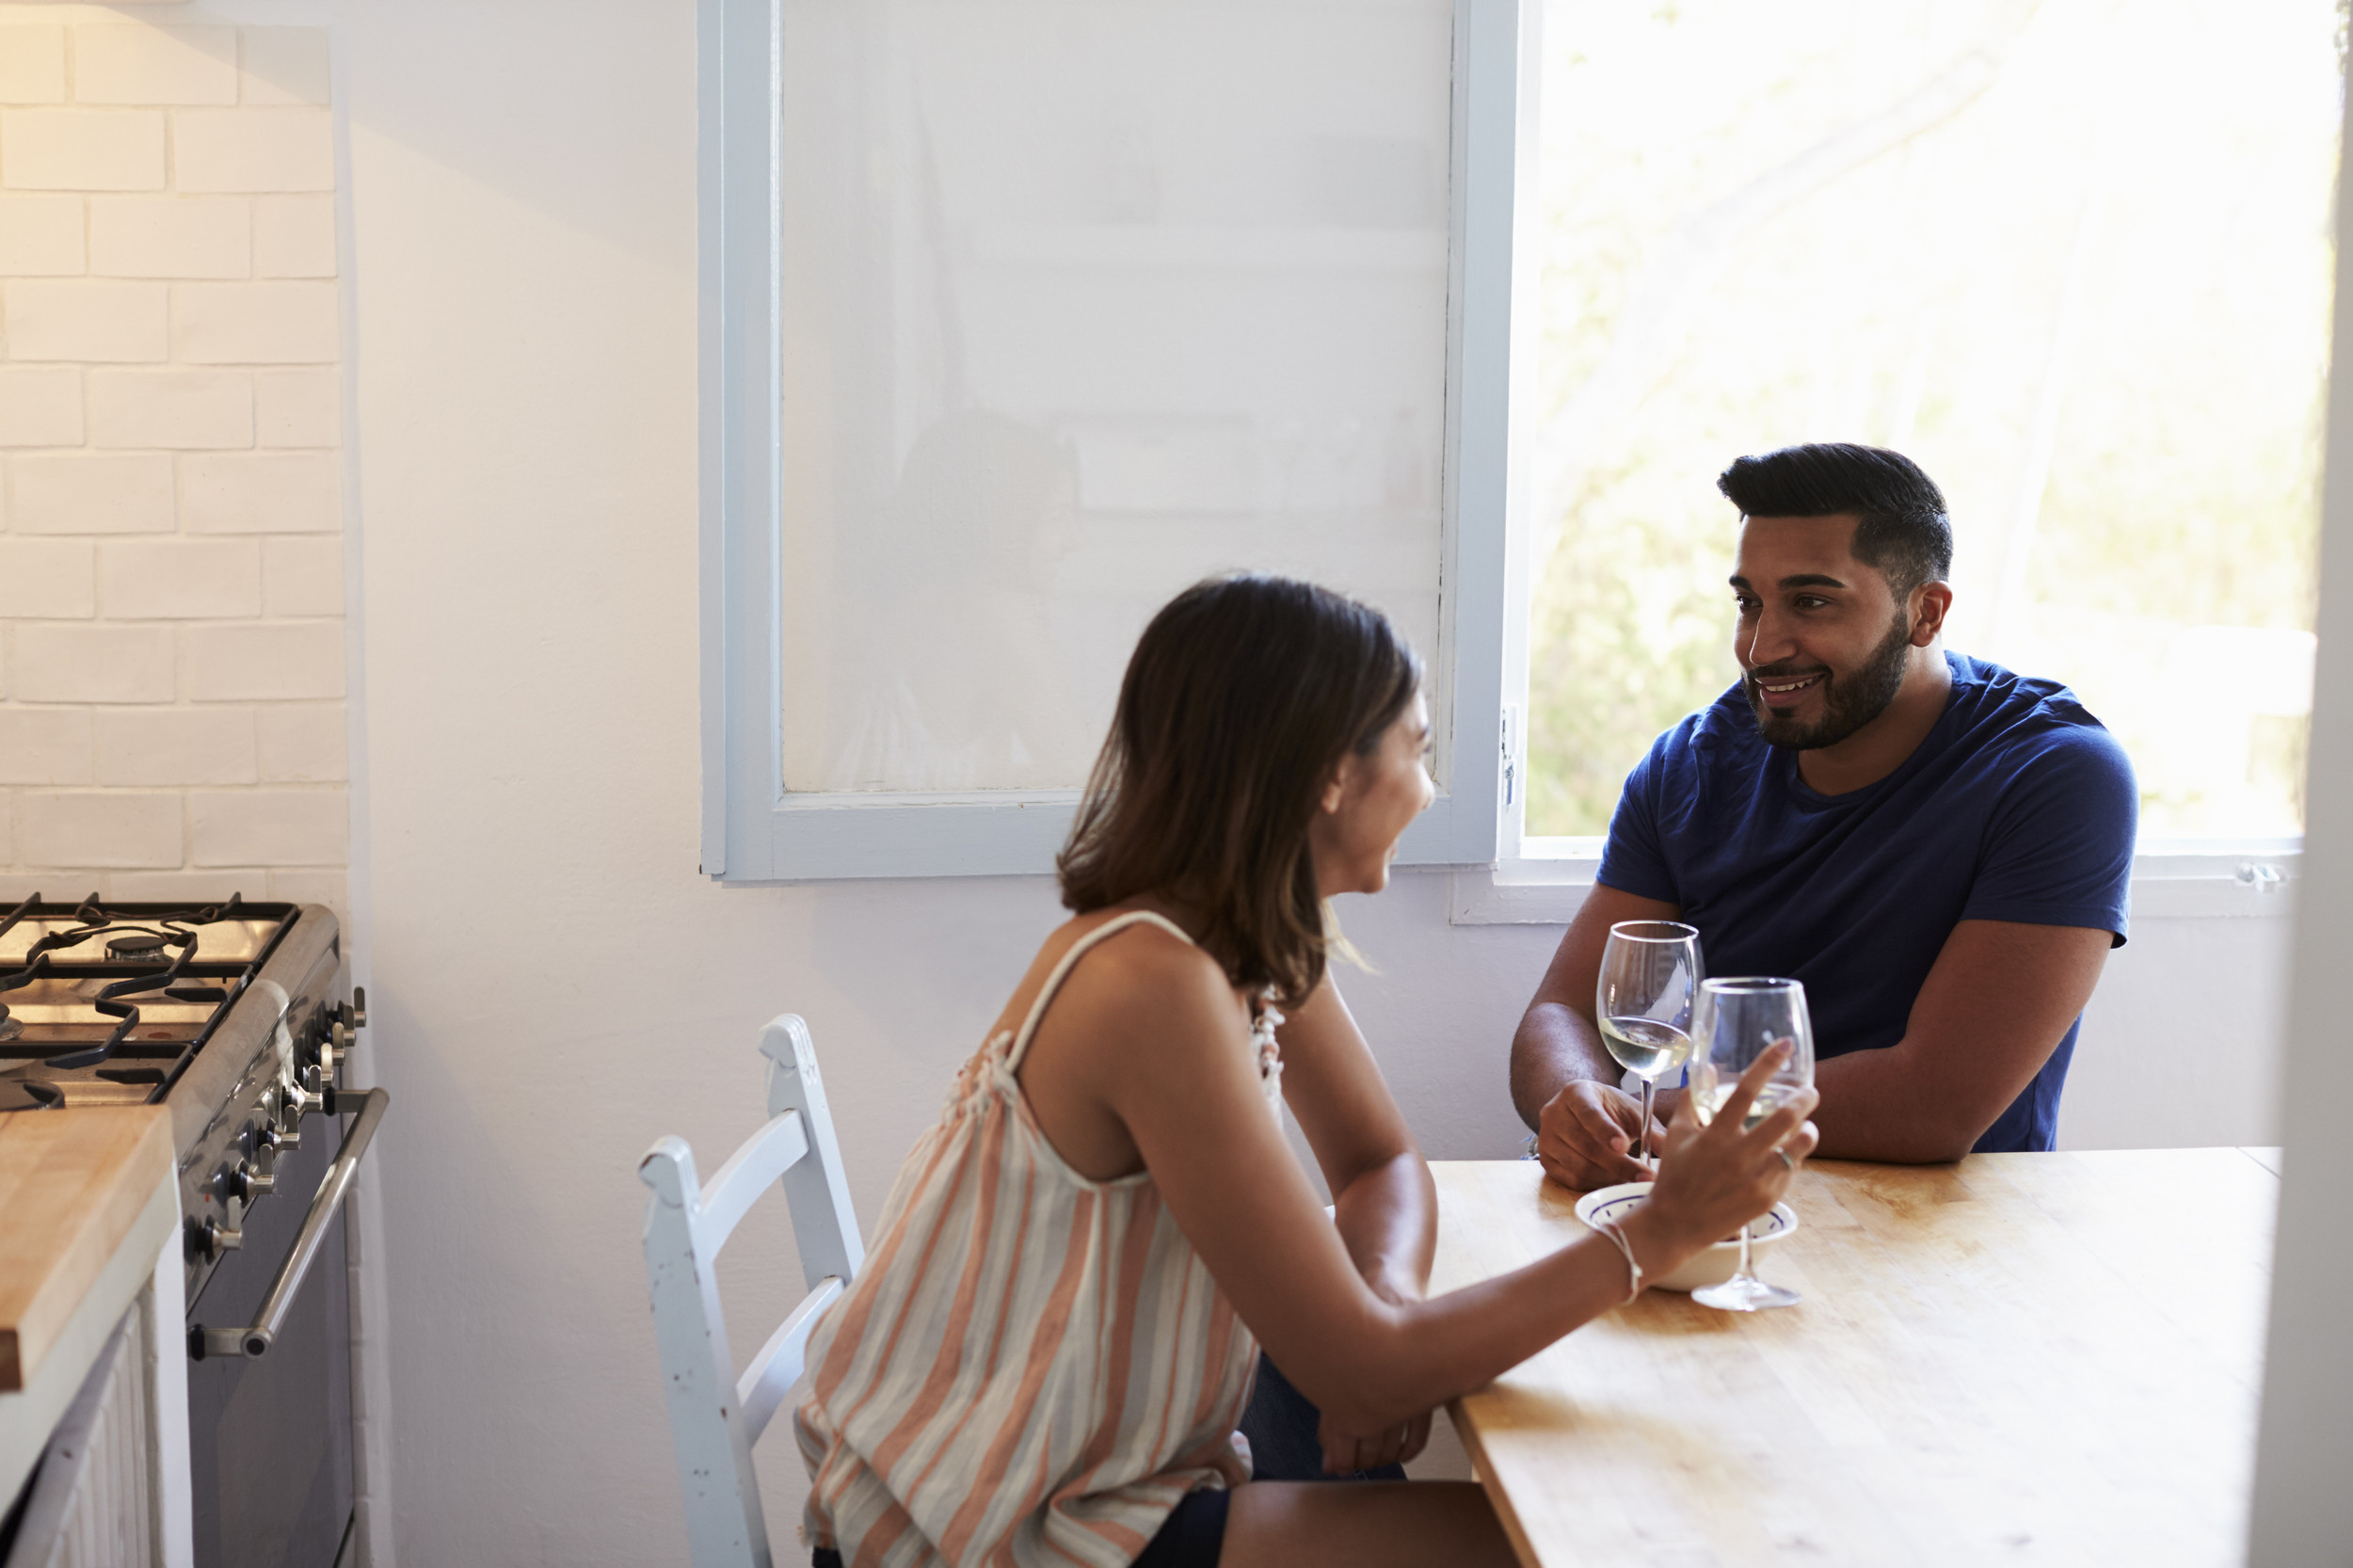 5 signs you need money counseling, not marriage counseling